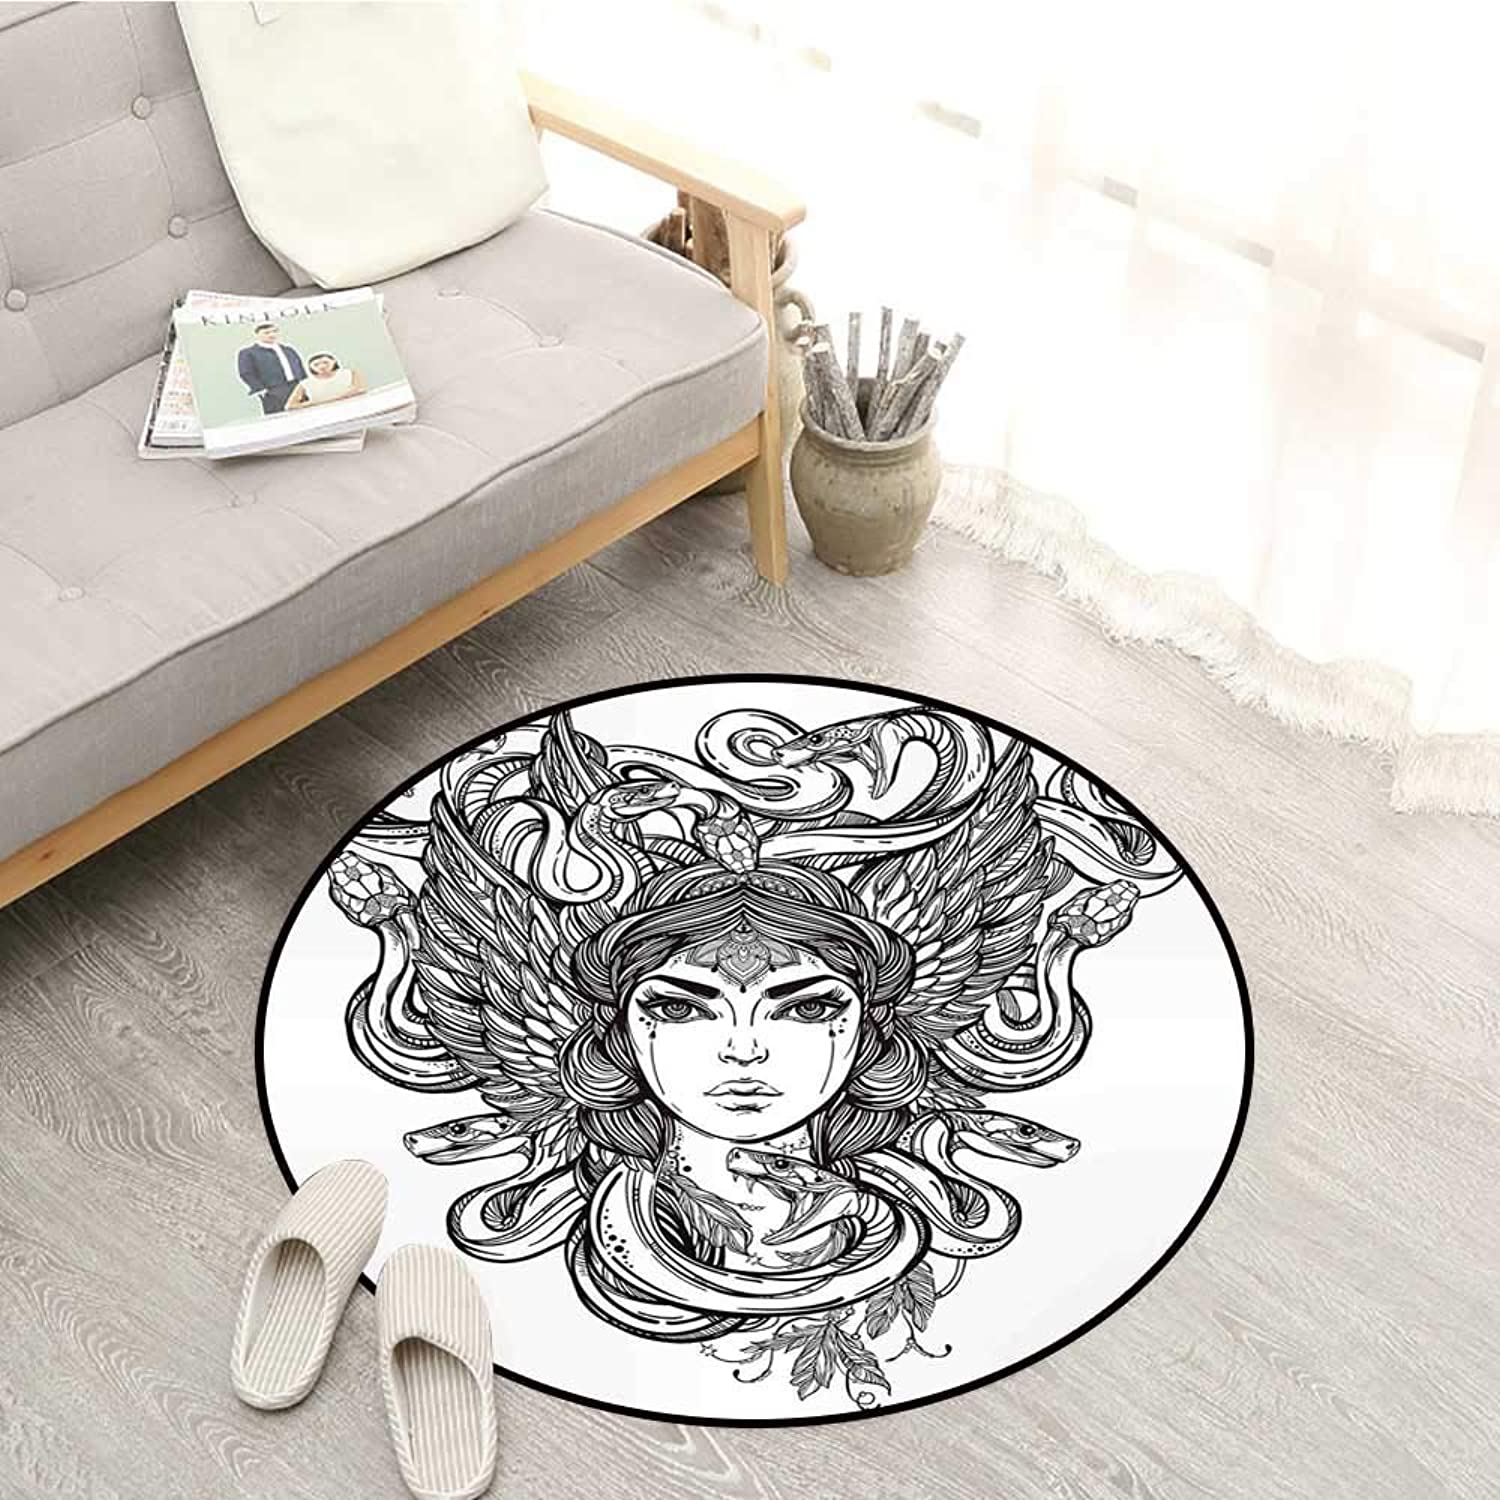 Occult Kids Rugs Sketch of Tribal Spiritual Female Woman Portrait Folk Queen Mythical Medusa Icon Sofa Coffee Table Mat 4'3  Black White